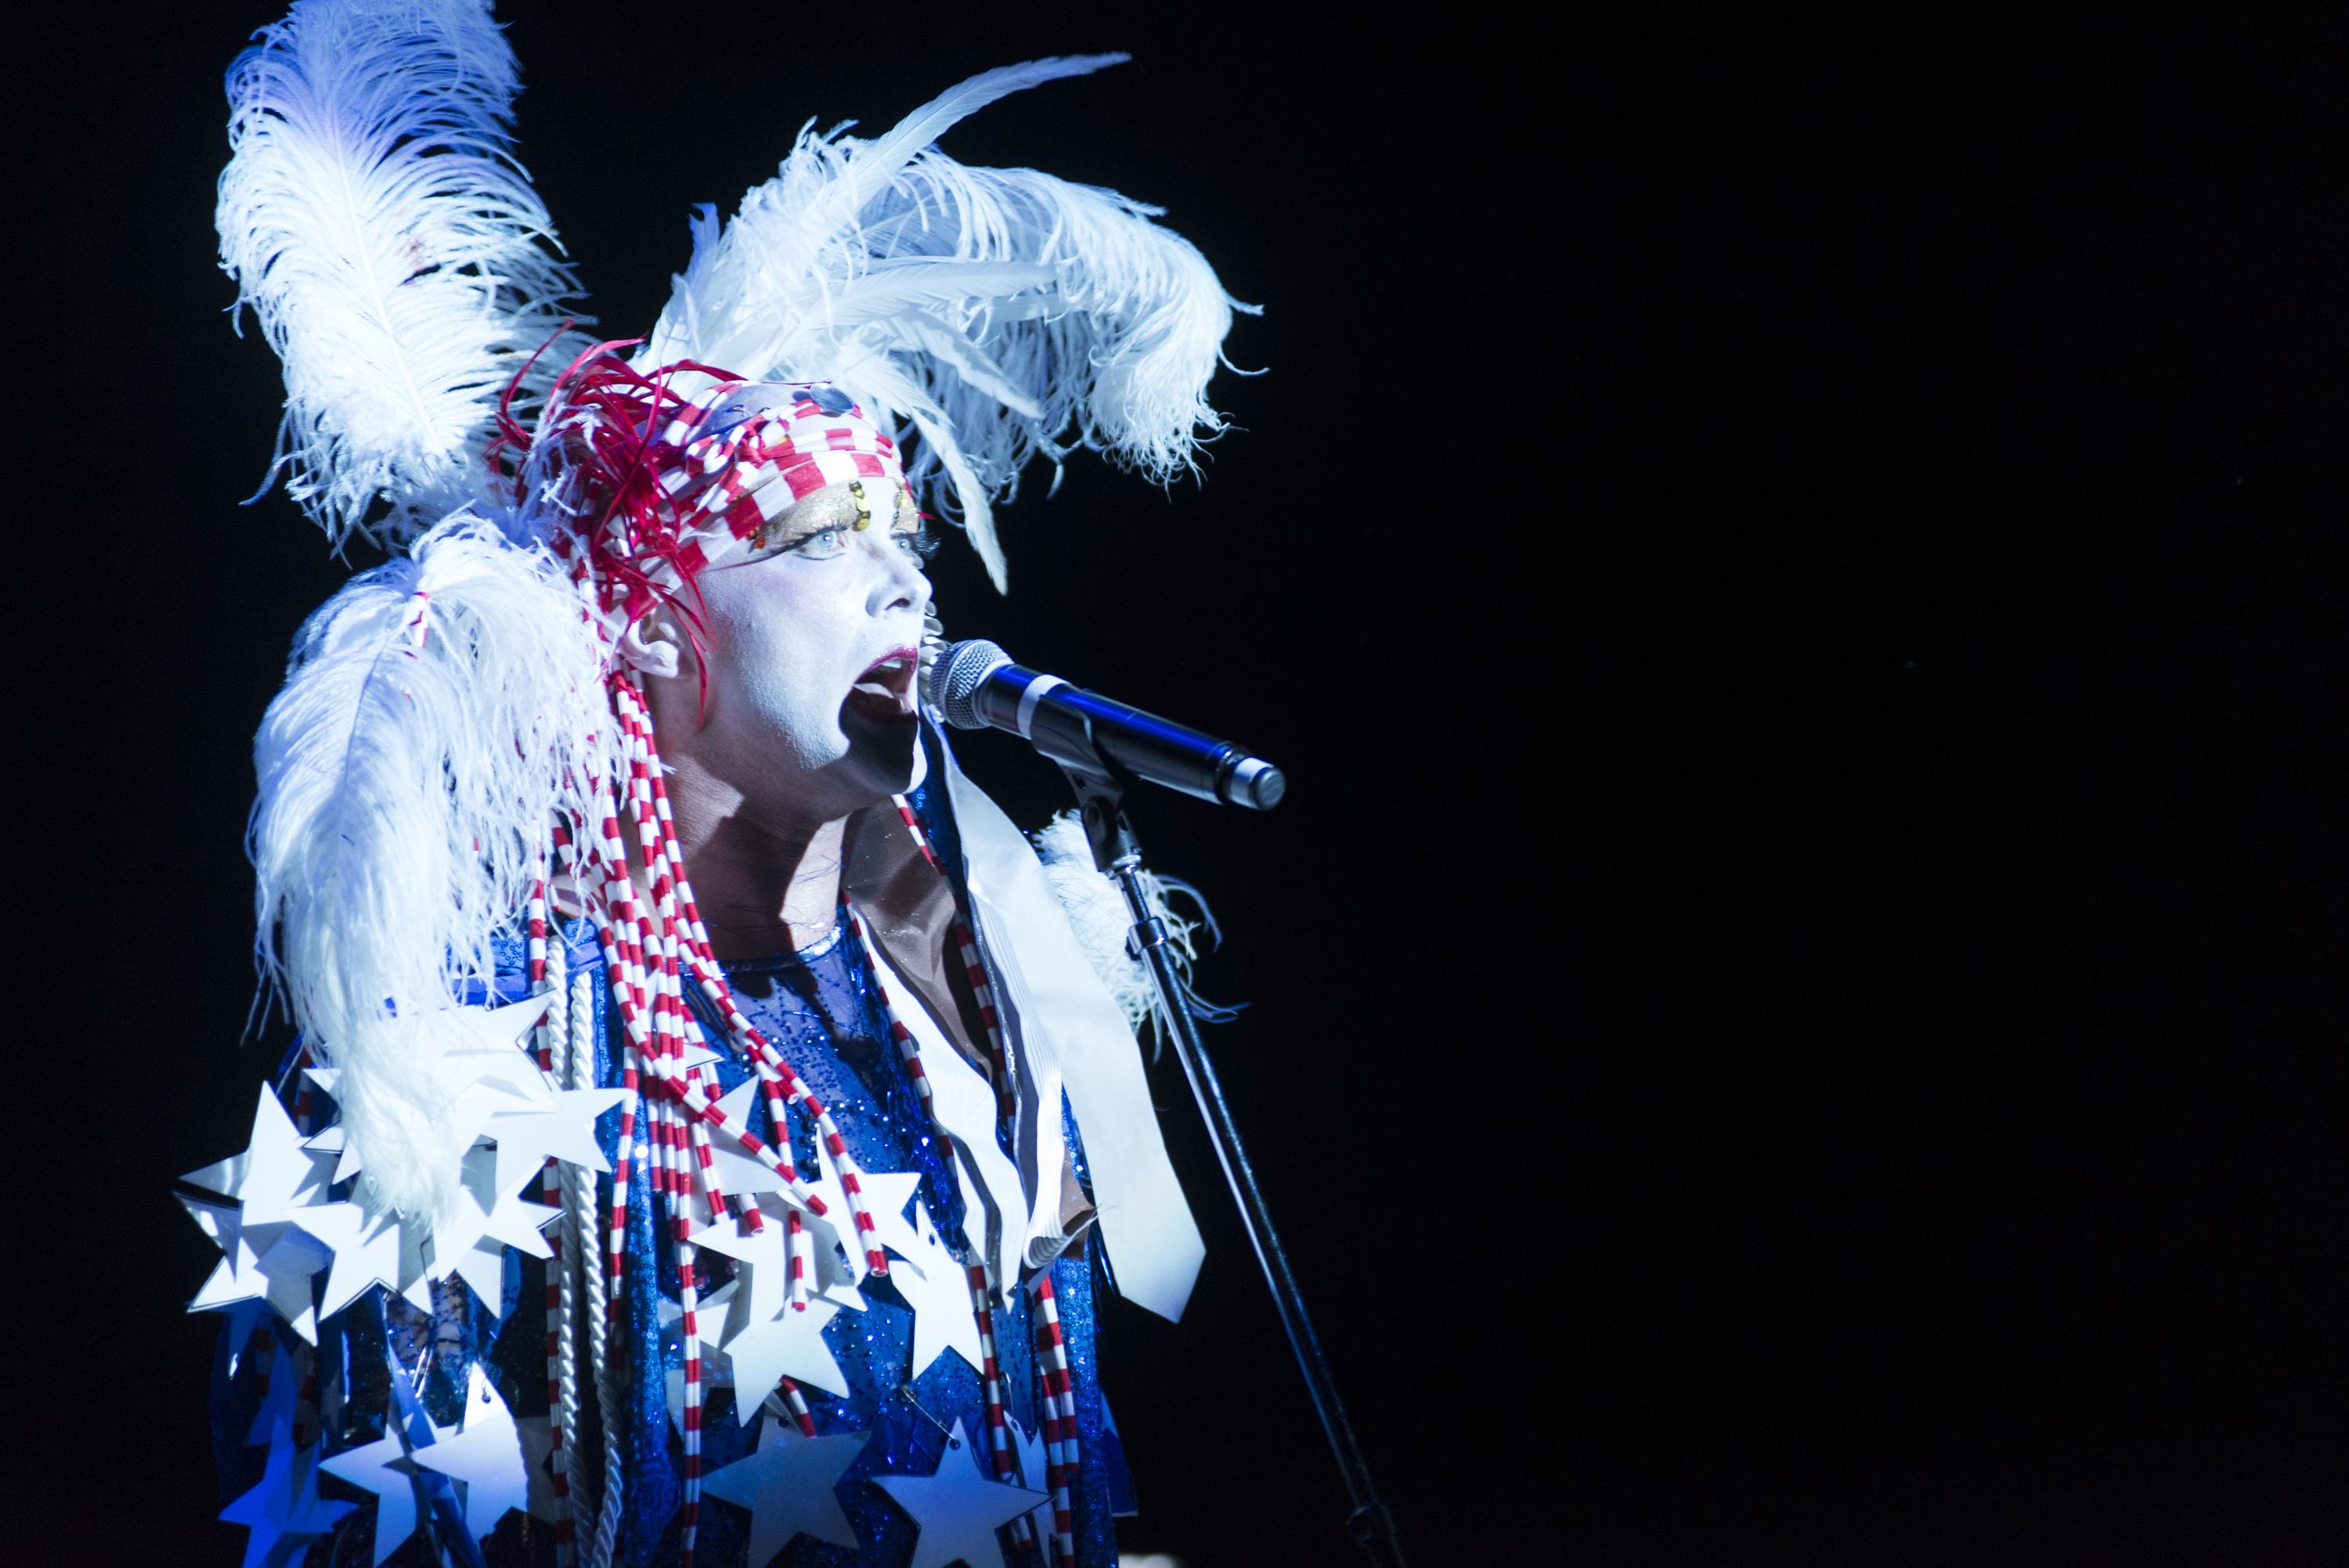 A person sings at a microphone on a pitch-black stage, wearing a white feather headdress, a red-striped bandana, and blue dress strung with white paper stars.